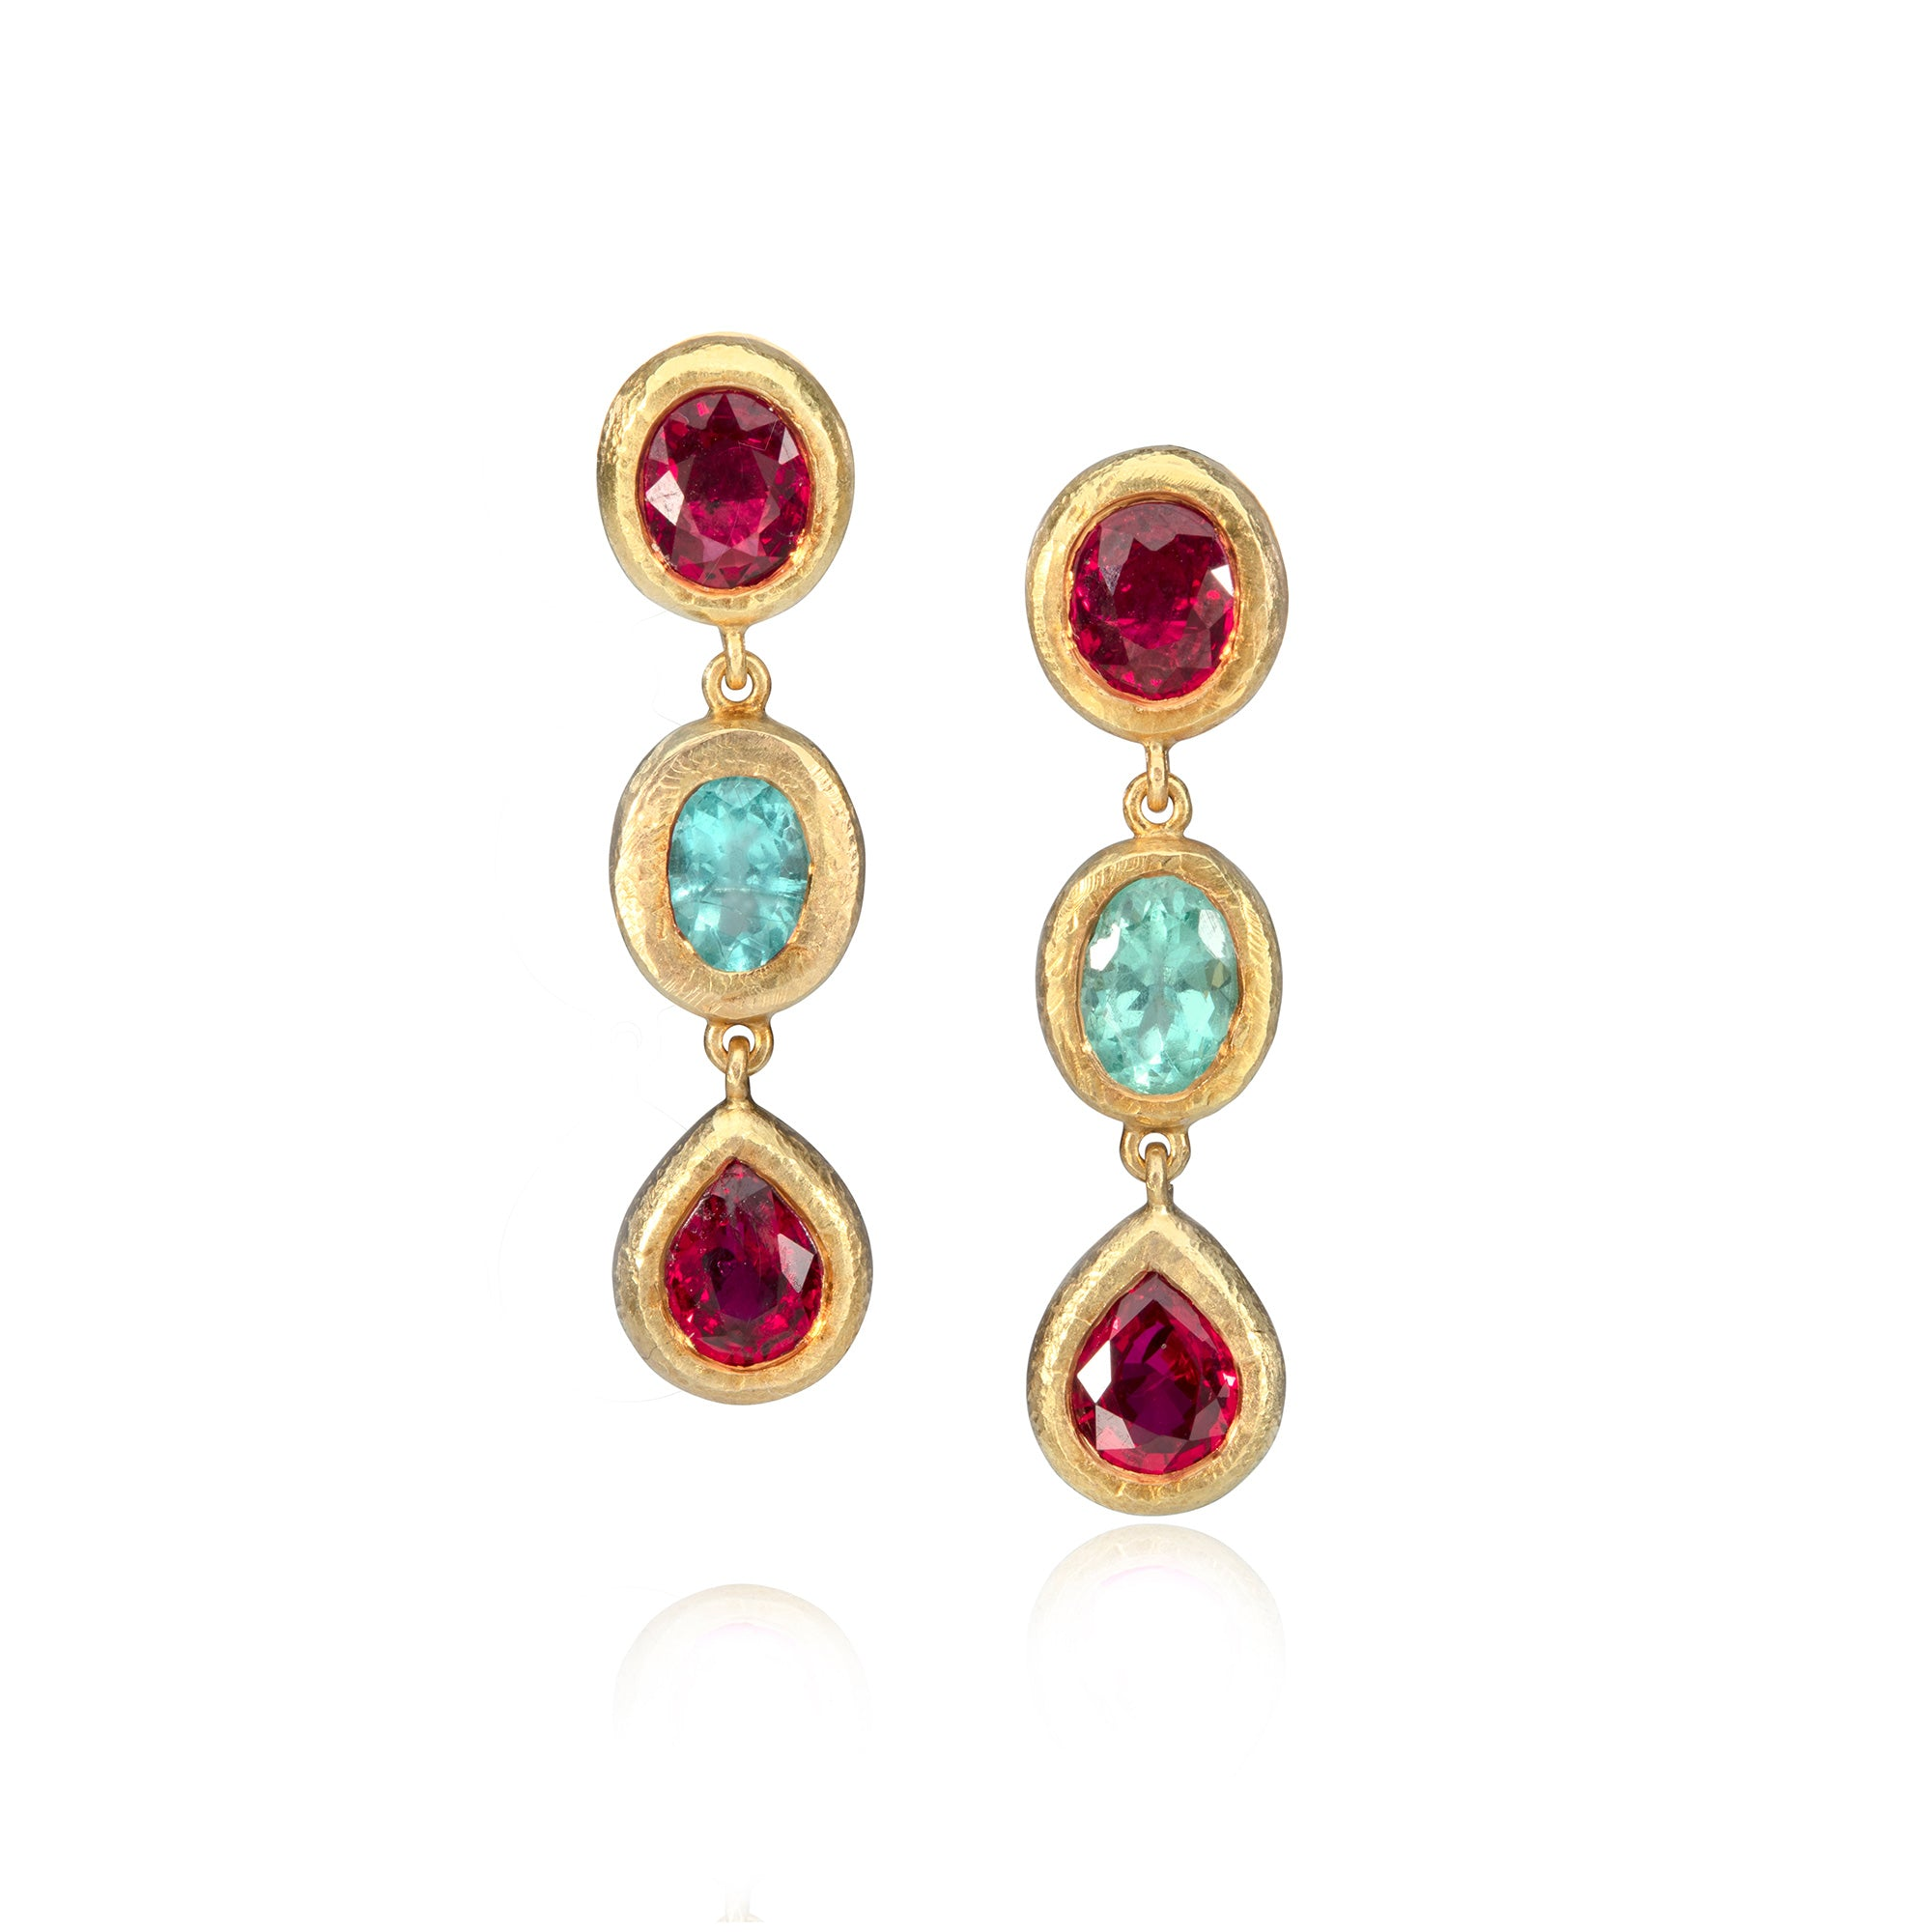 Paraiba tourmaline and ruby drop earrings on white background